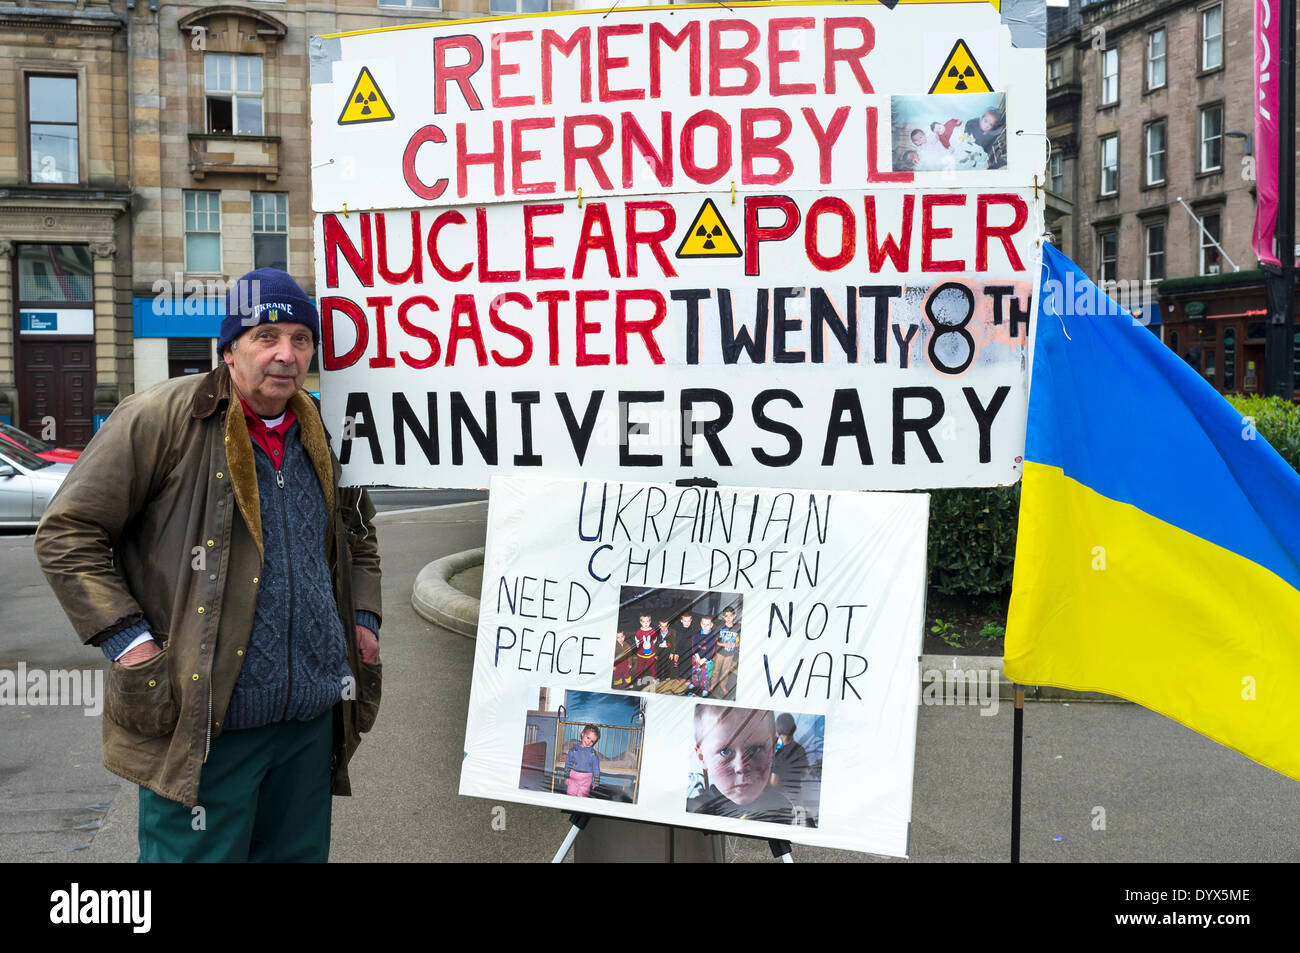 Glasgow, Scotland, UK. 26th Apr, 2014. Jim Gillies, aged 74, retired electrician from Cumbernauld near Glasgow, Scotland, UK, has carried out a 'one man' remembrance vigil, every year for the past 27 years, on the anniversary of the nuclear power plant explosion at the Ukrainian reactor in Chernobyl where 31 people died and 500,000 people were affected. Jim Gillies has visited the disaster area 16 times carrying out humanitarian work and has also been on the 'Black Tour' around the radioactive plant. Credit:  Findlay/Alamy Live News - Stock Image